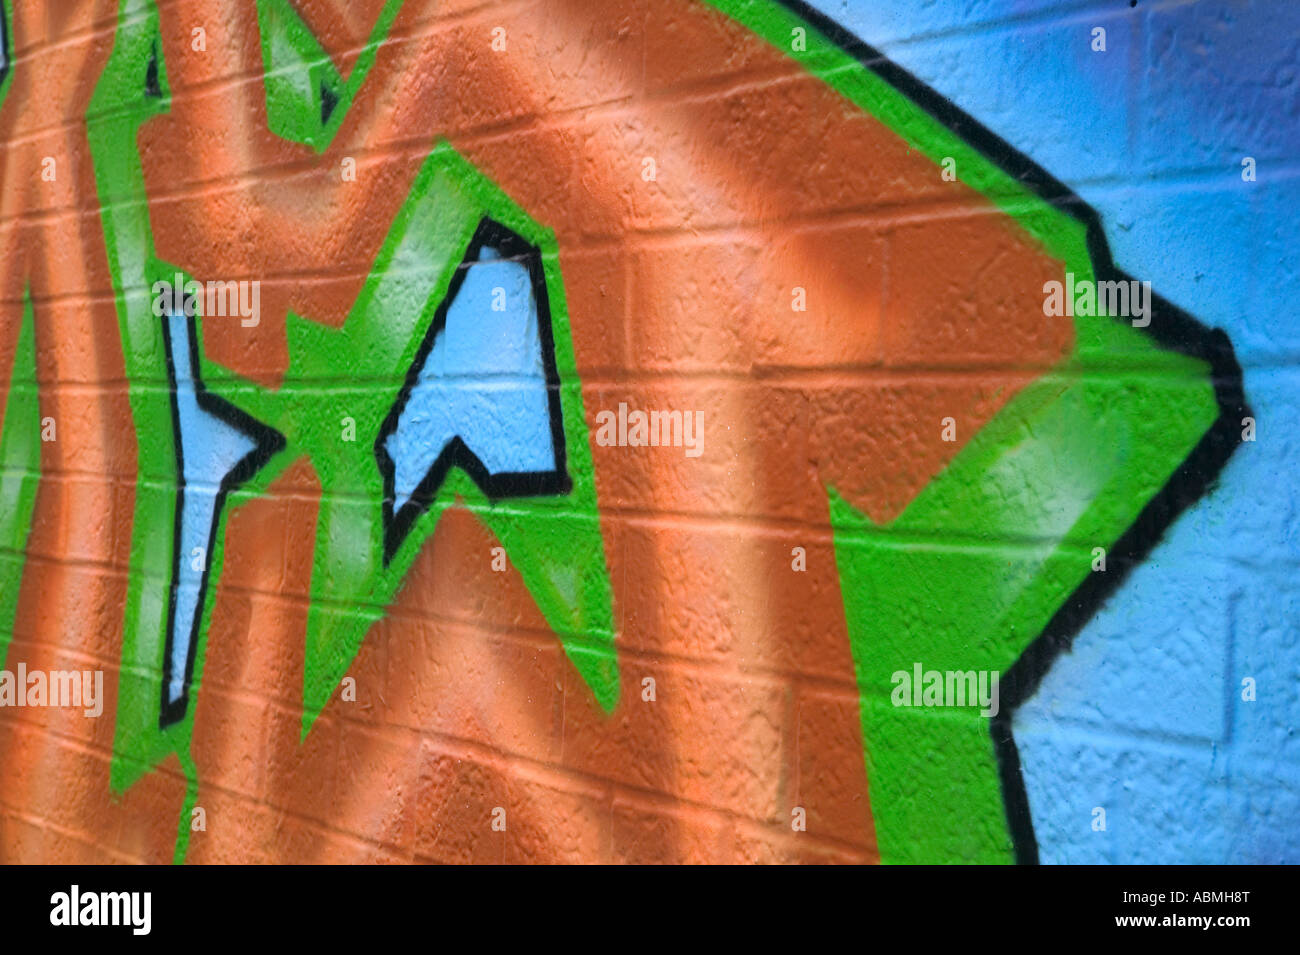 Graffiti sprayed on the brick wall of an abandoned building - Stock Image